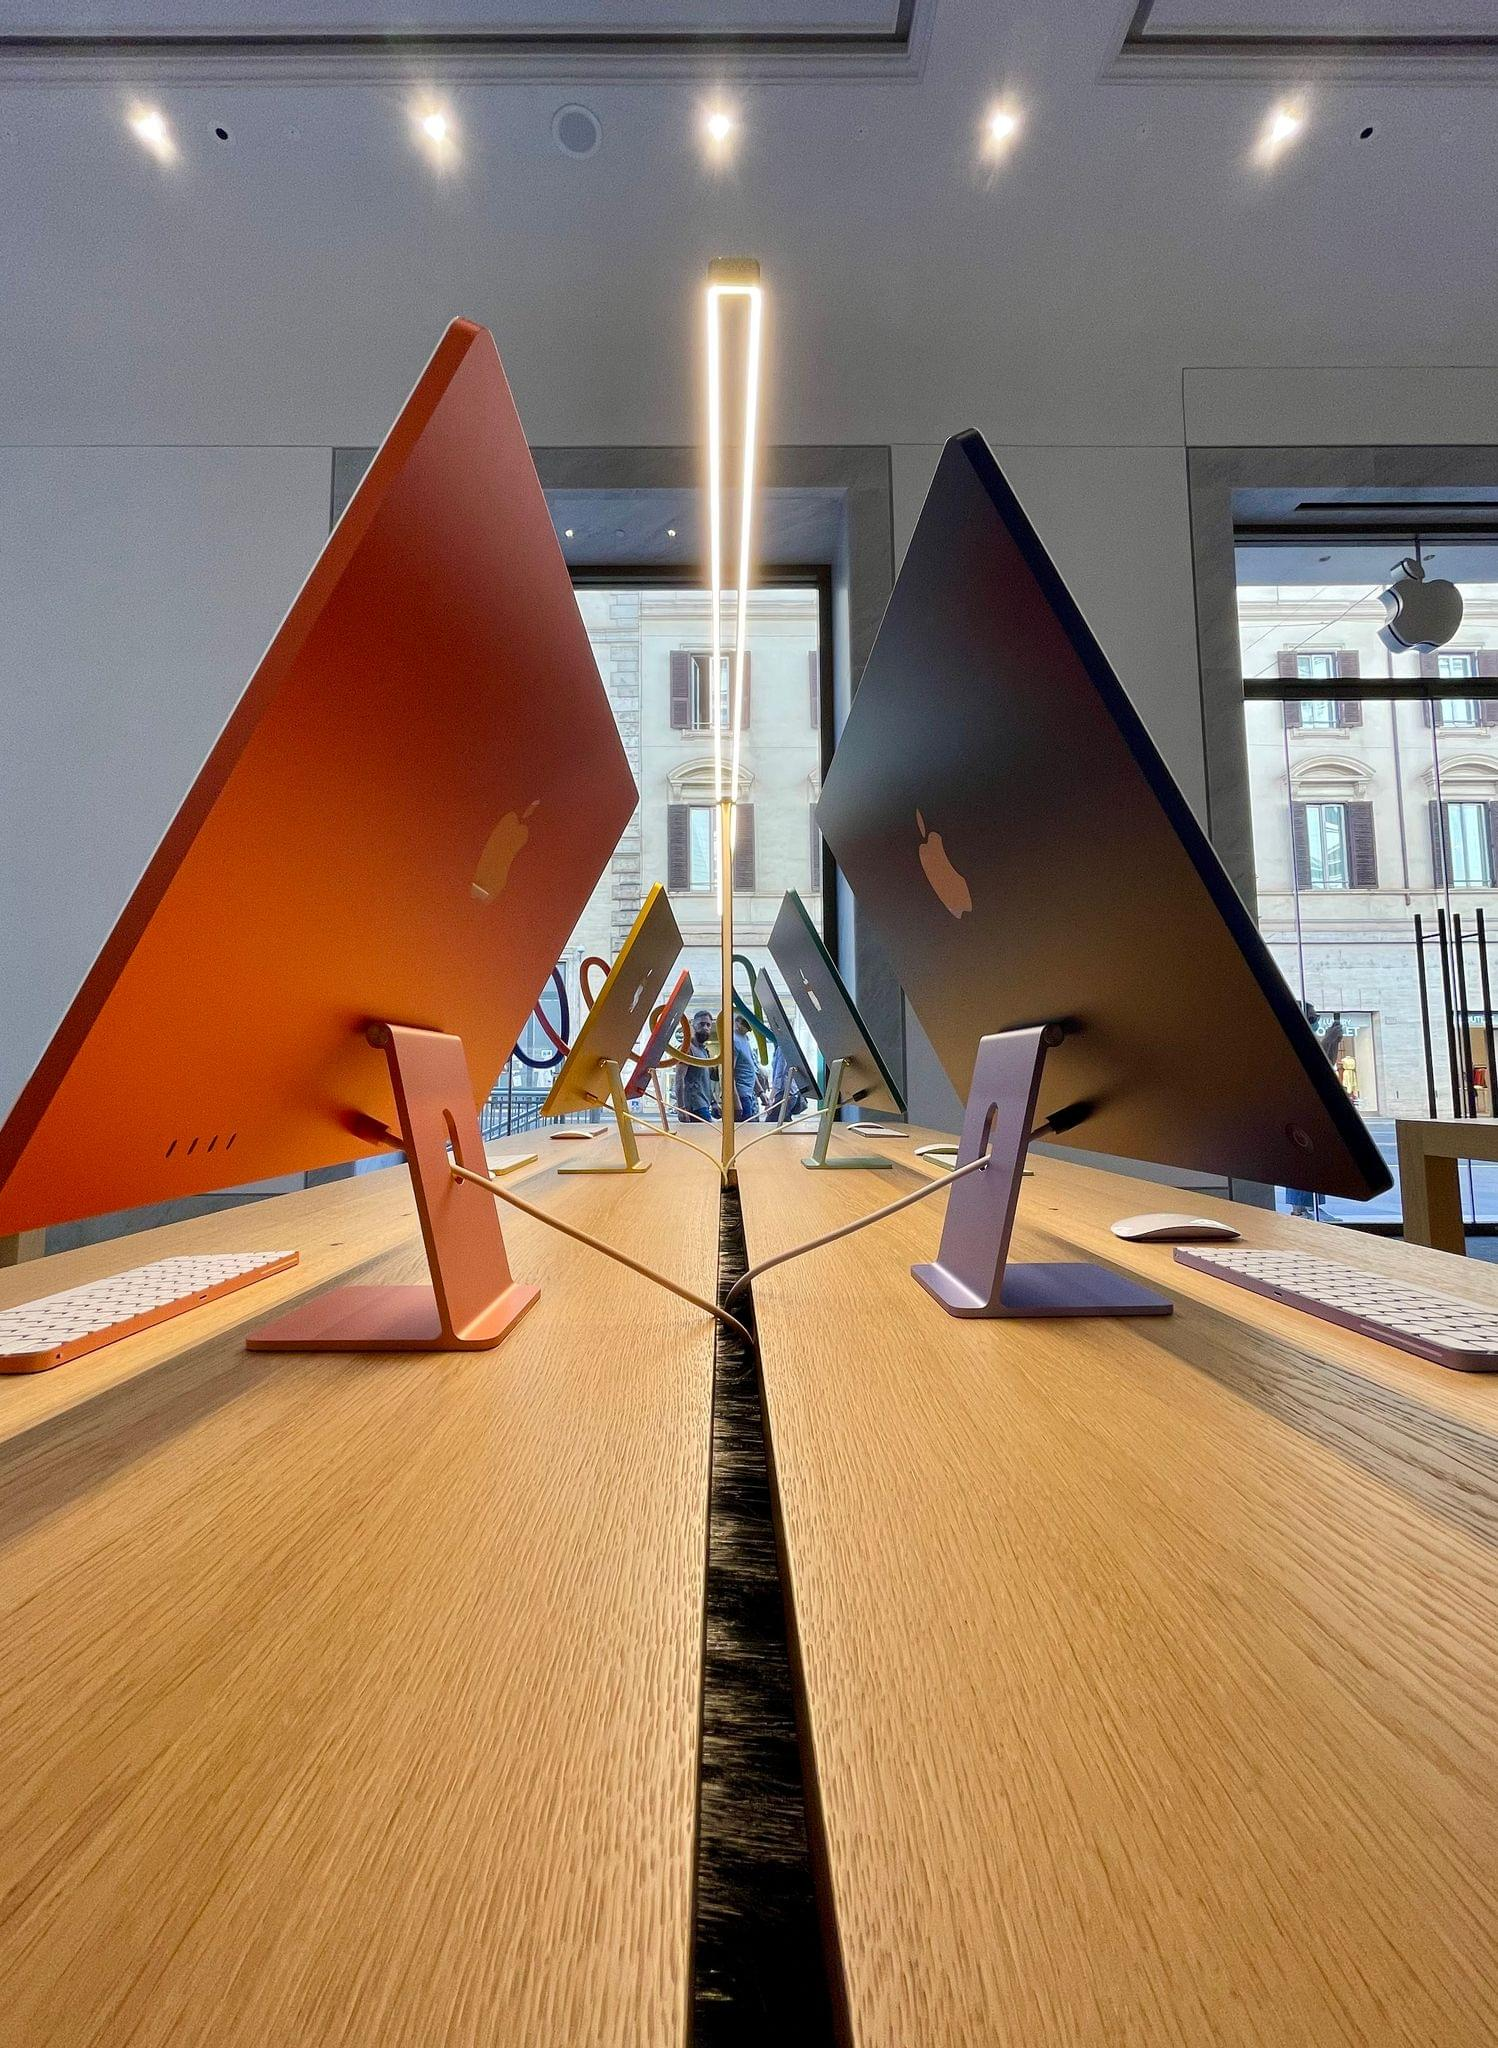 As you can imagine, the new colorful iMacs catch a lot of looks from bystanders outside.